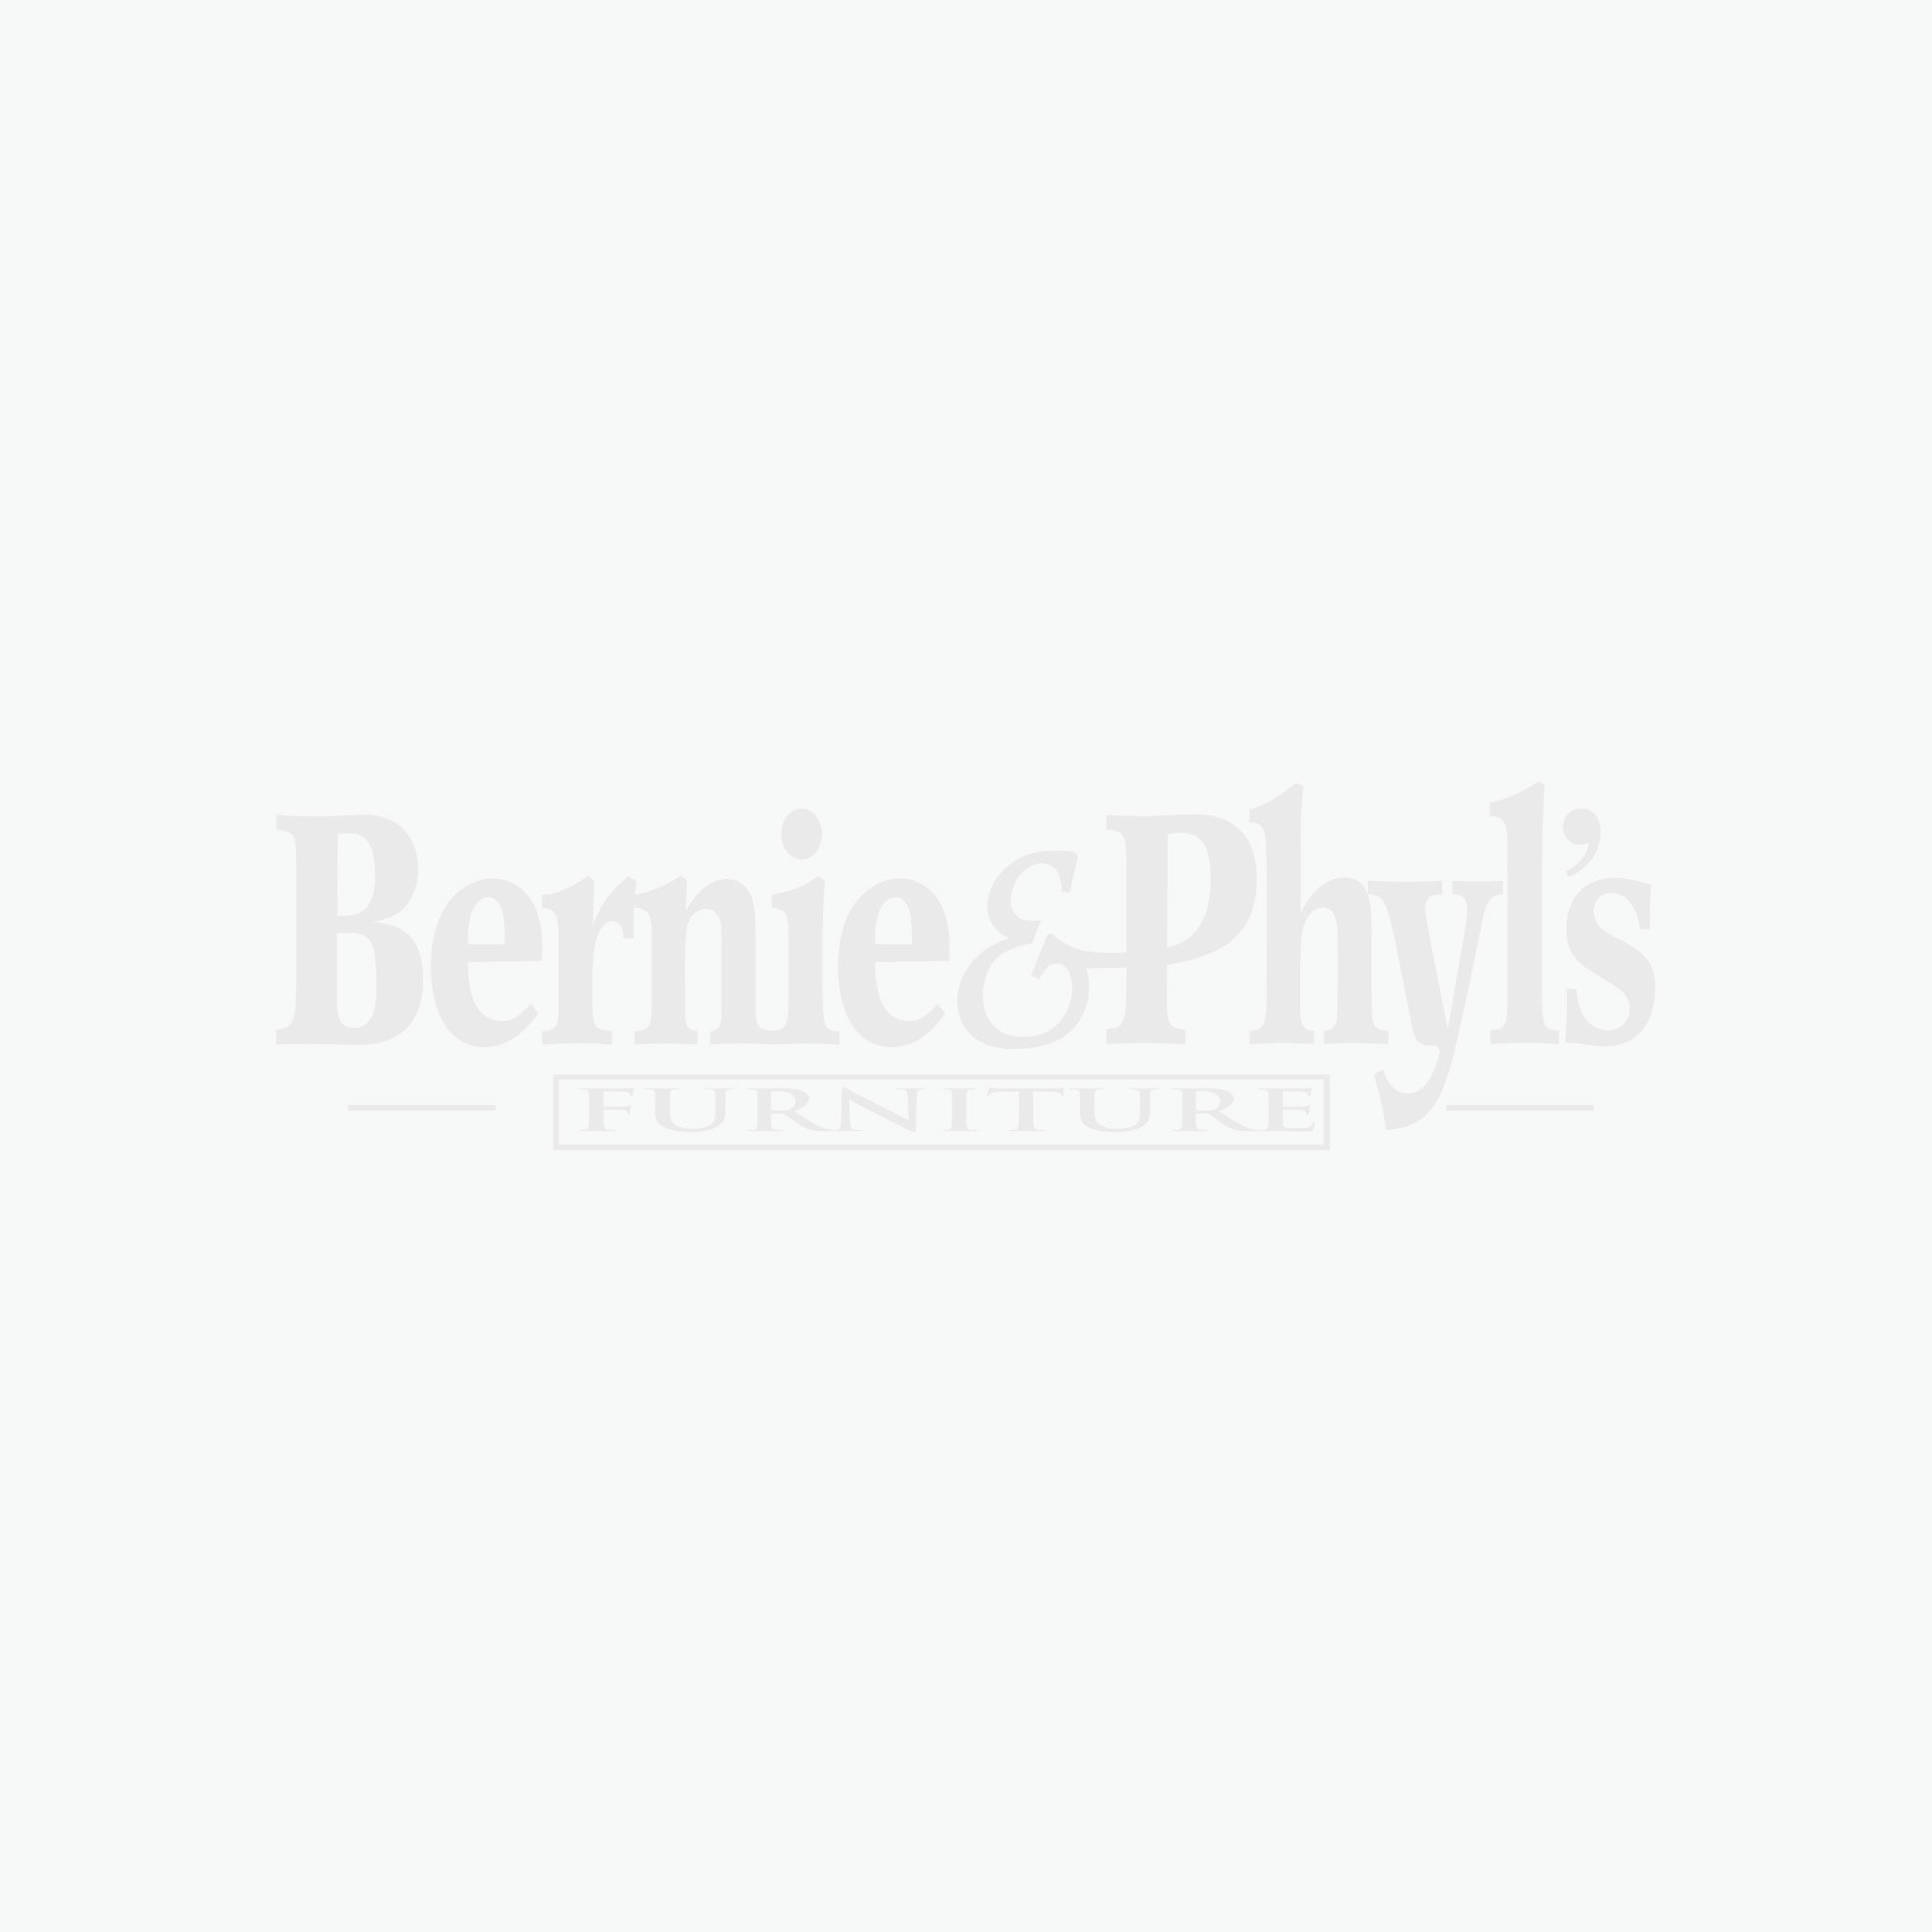 BunkHouse Twin Bunk Bed - Bernie & Phyl's Furniture - by ...